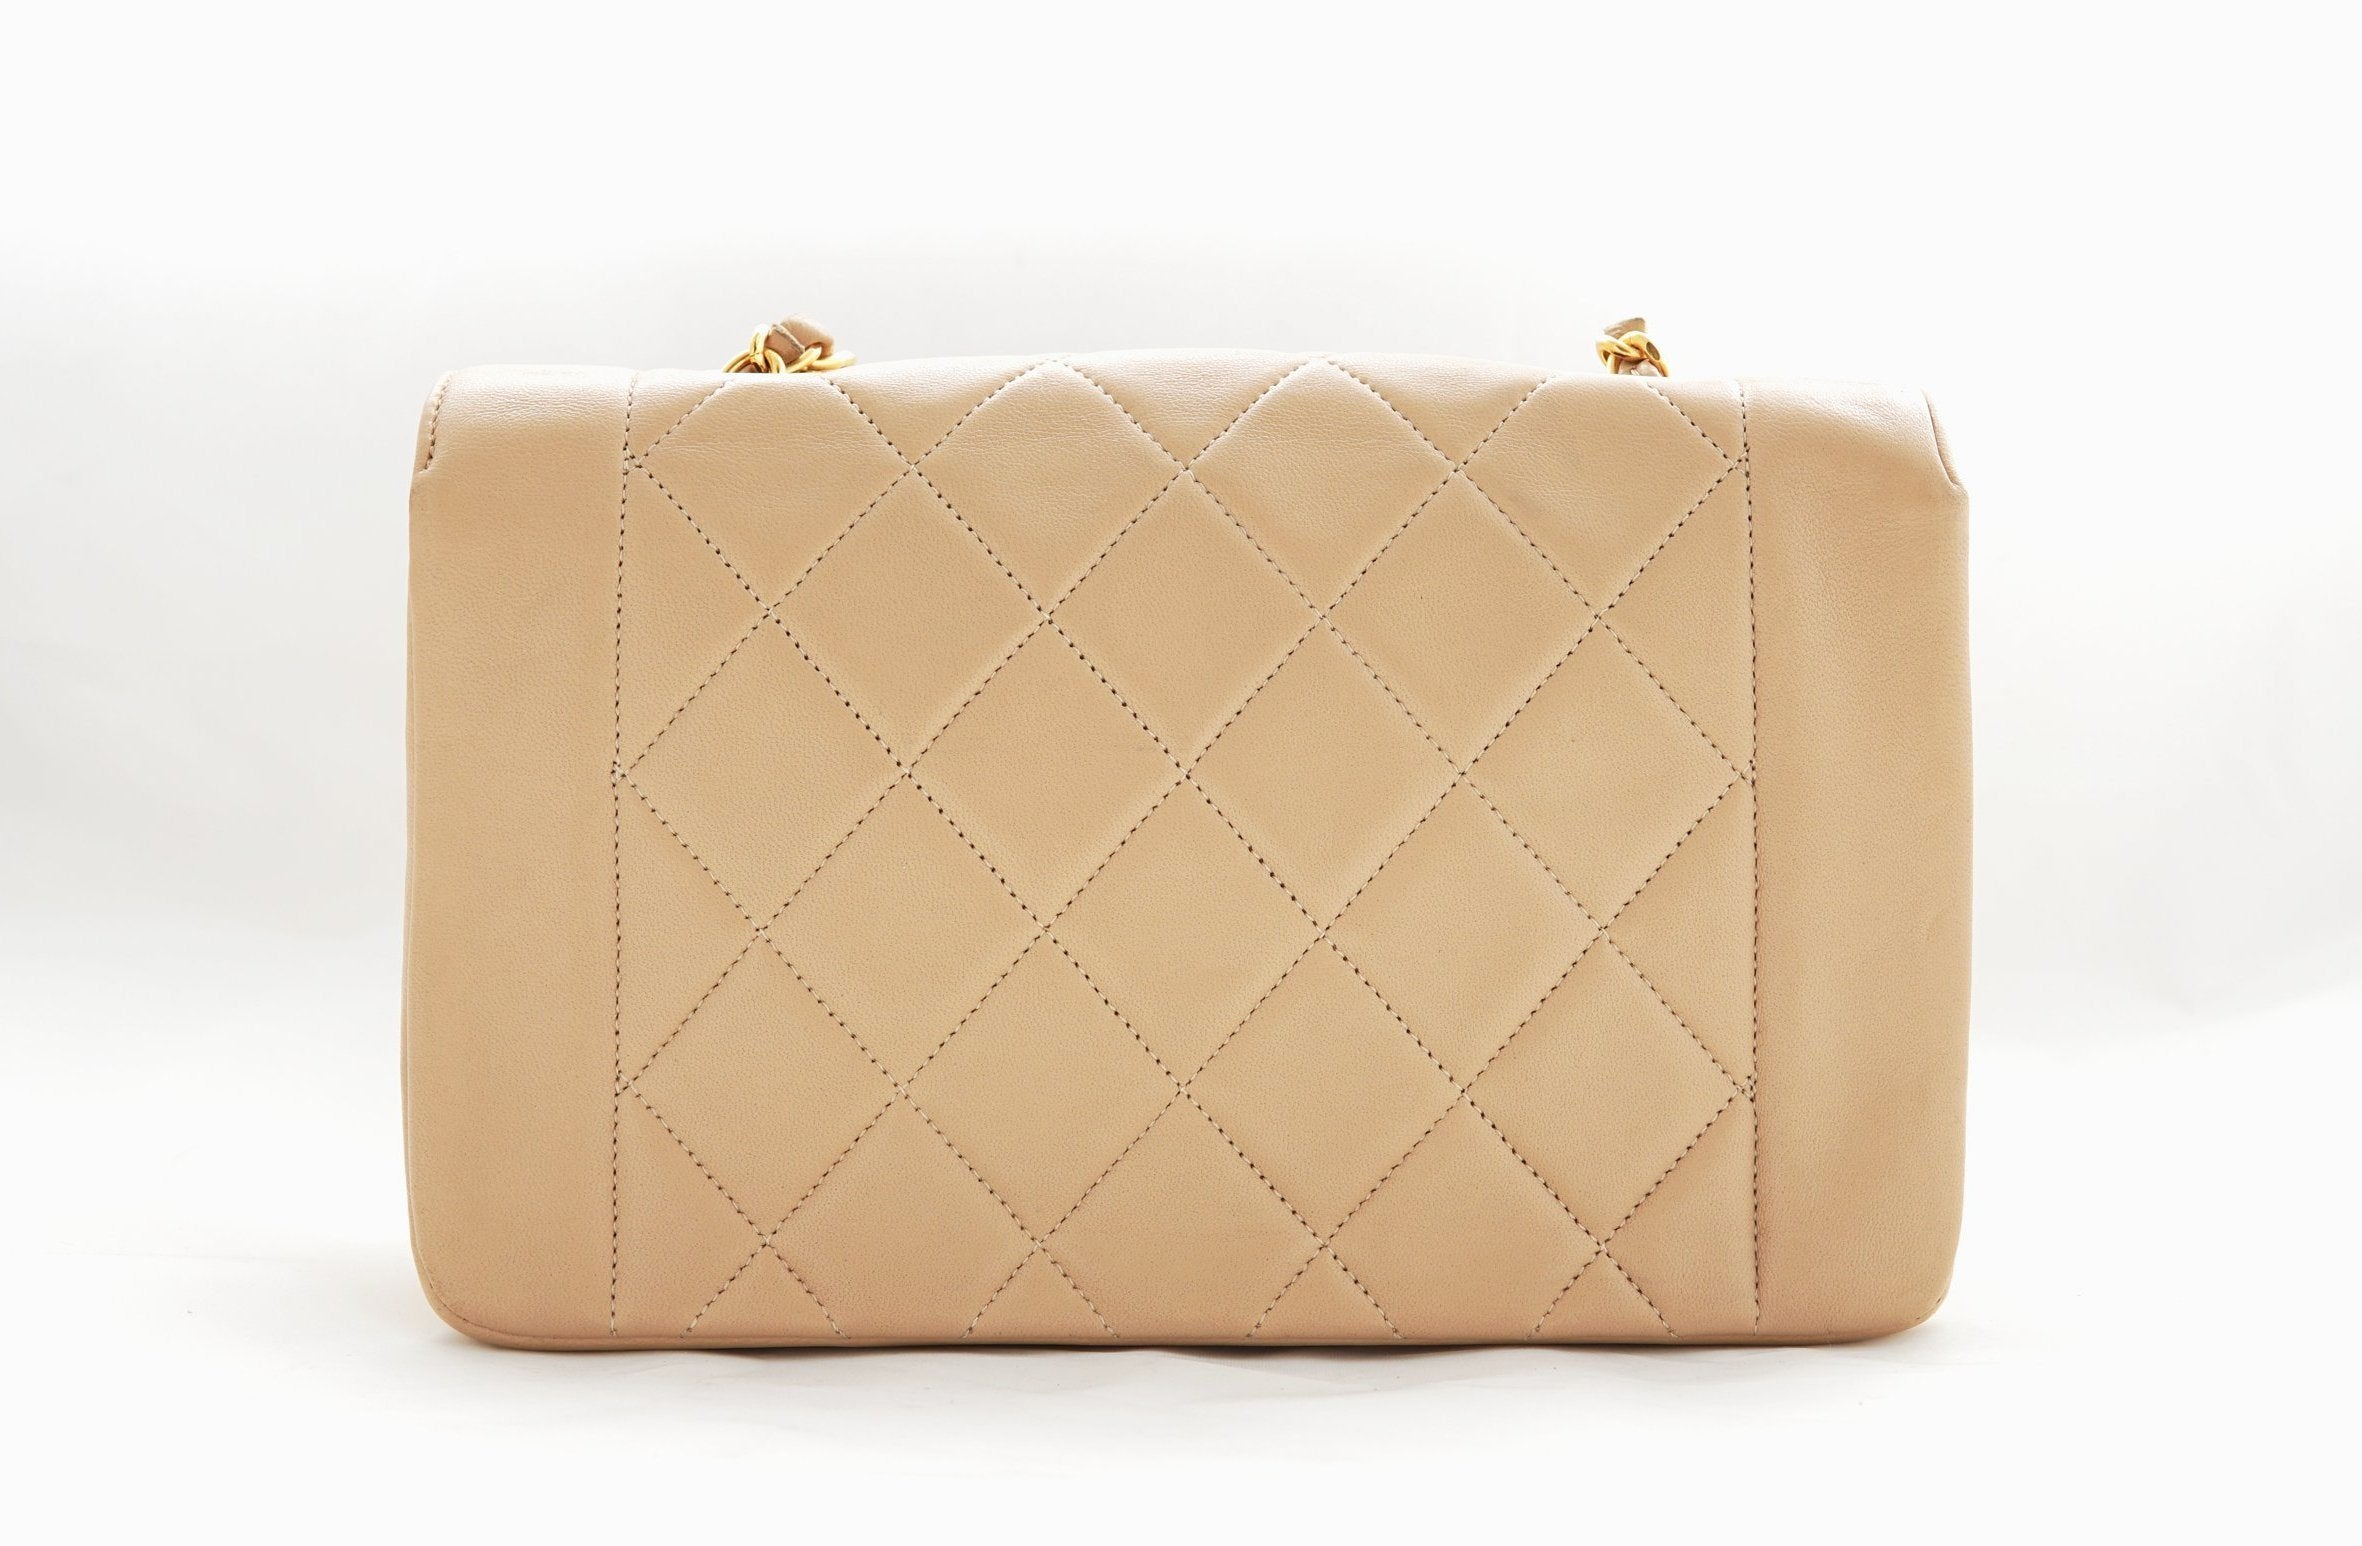 cdd55329794d CHANEL VINTAGE DIANA FLAP BAG - Quilted Lambskin in Beige